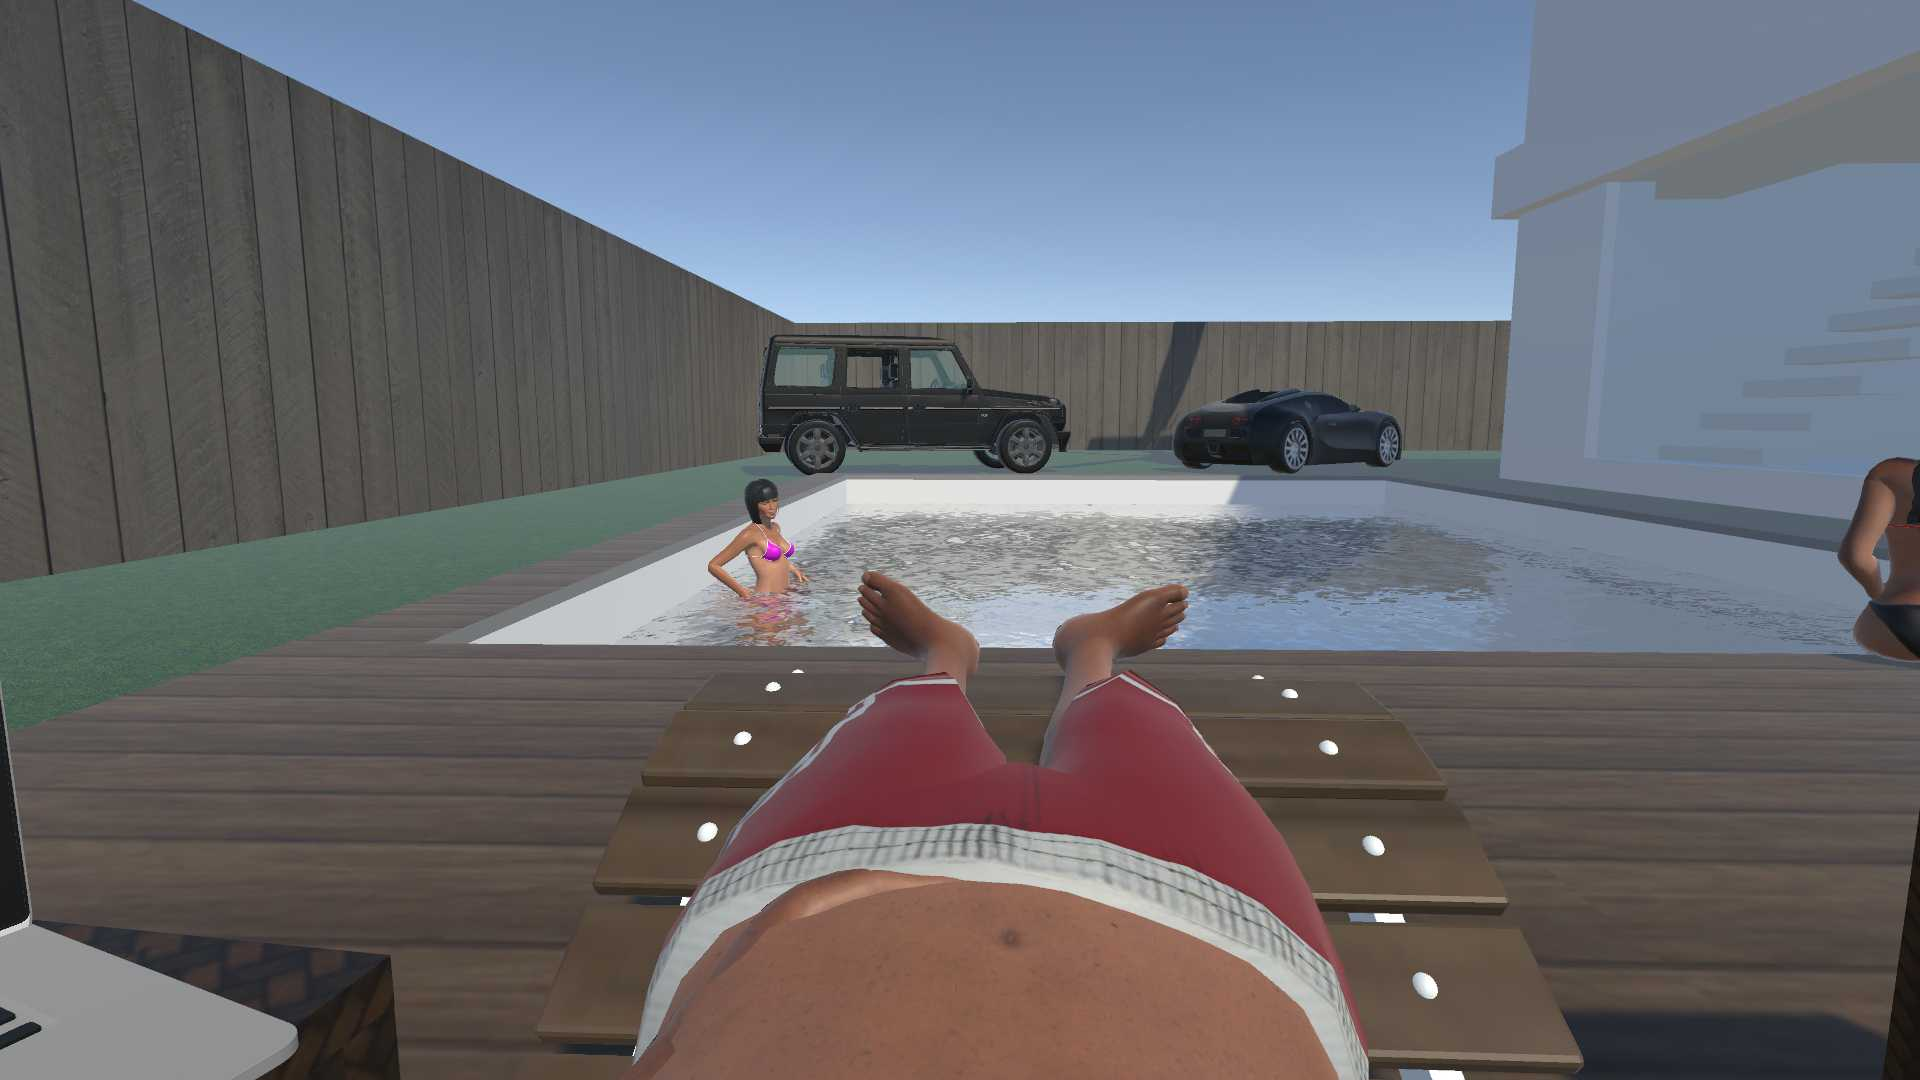 Rich life simulator VR